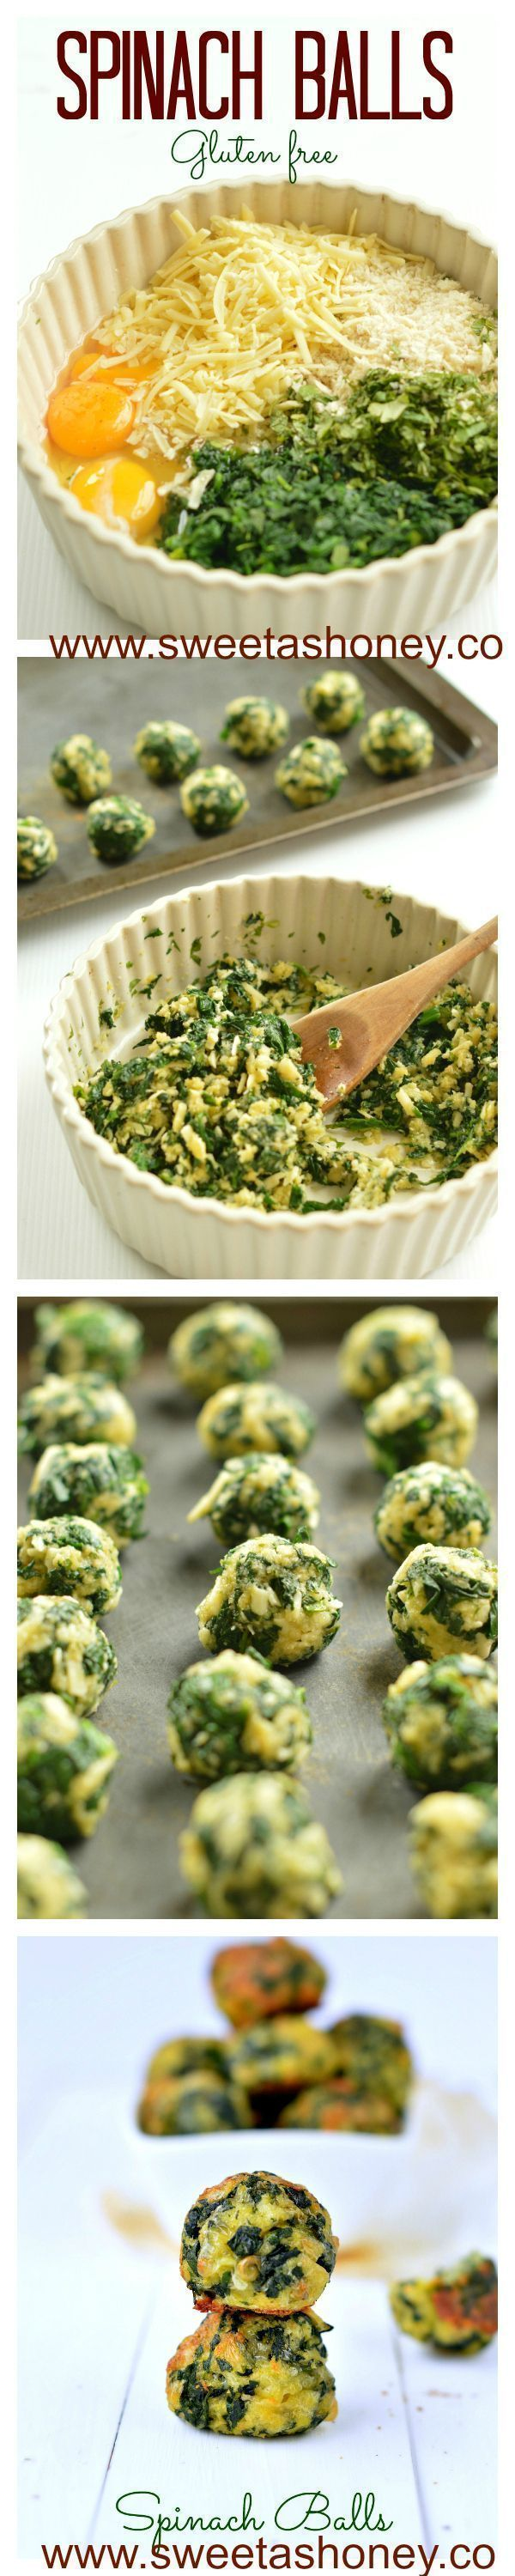 Spinach Balls   Best Spinach appetizers   Great Spinach clean eating recipes for summer.